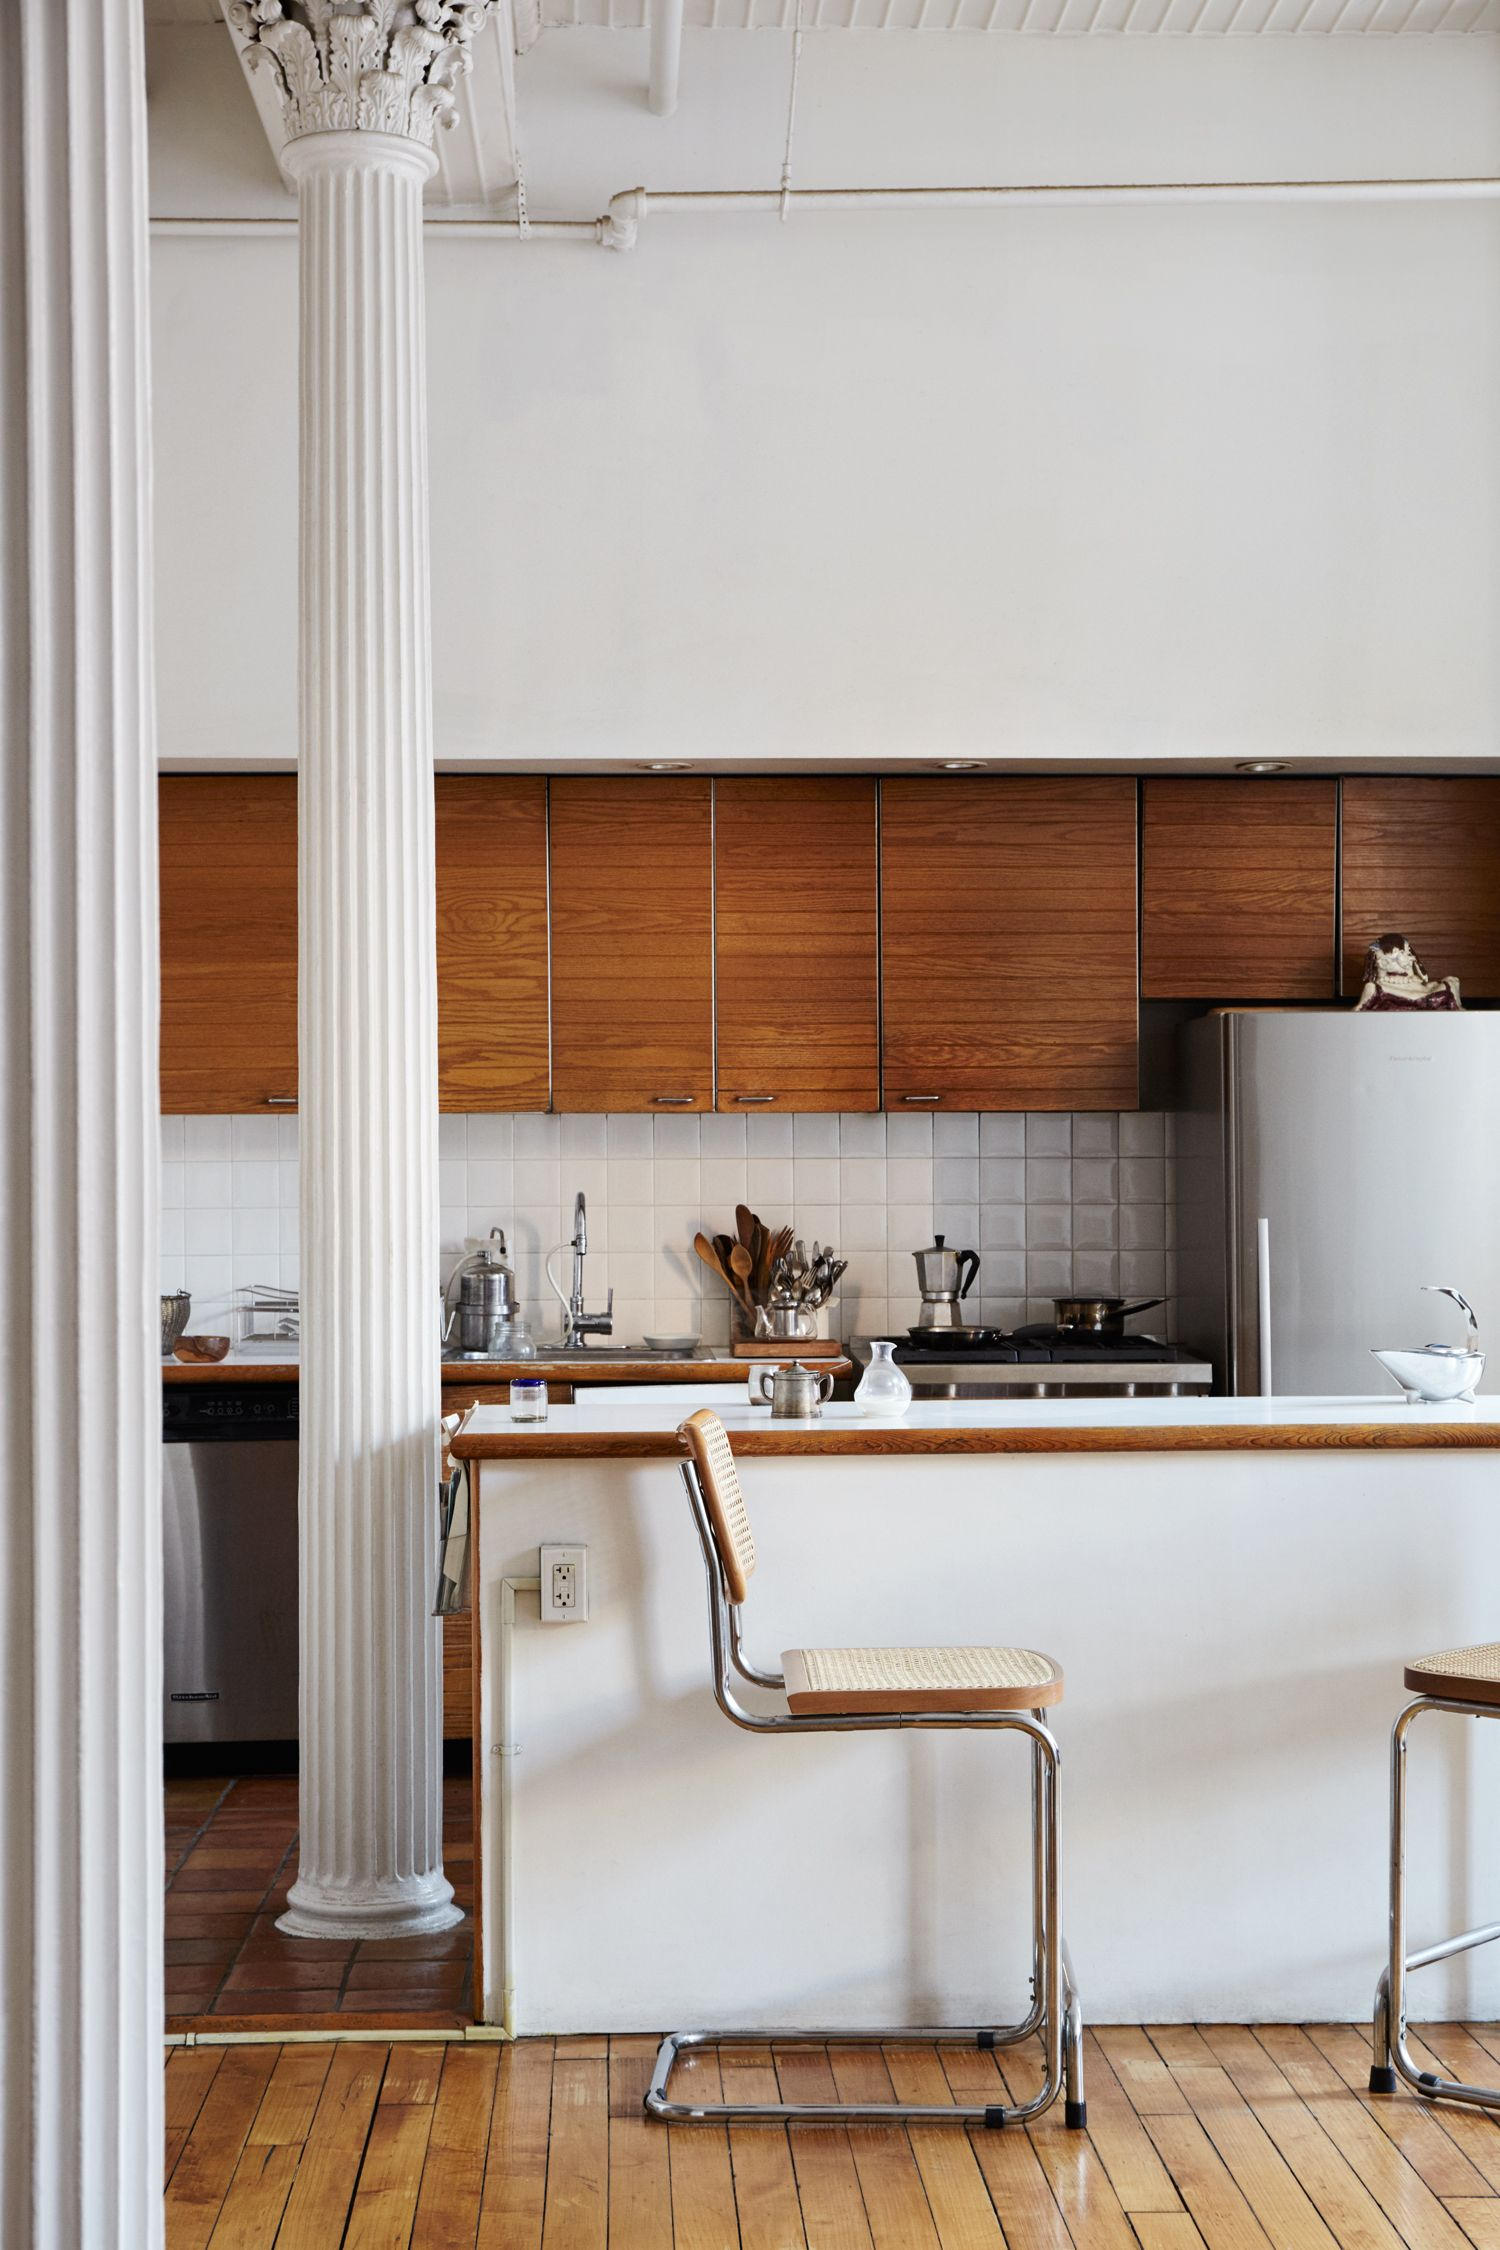 The New Neutral Kitchen is Anything But Bland & Boring | Küche ...